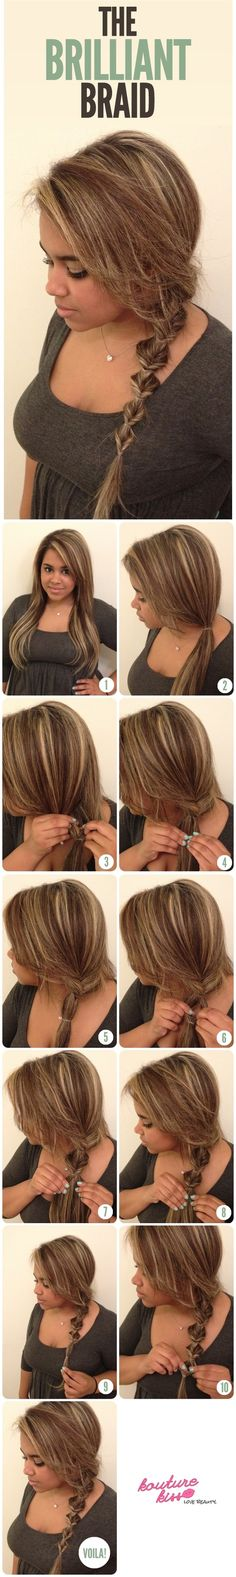 DIY - The Brilliant Braid Tutorial